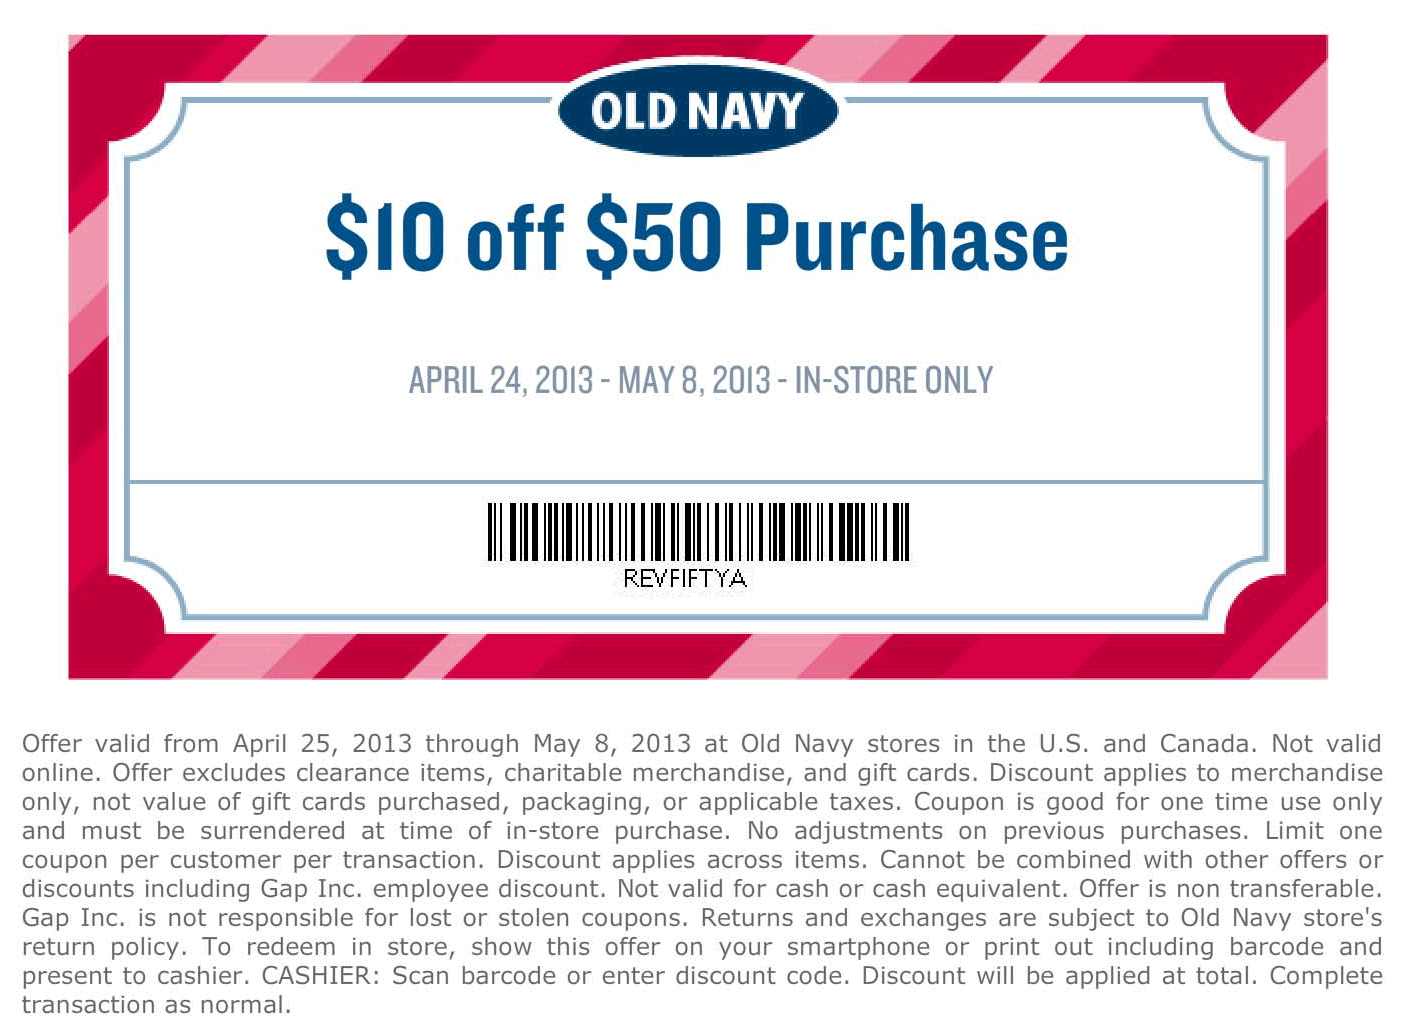 pinned may 4th: $10 off $50 at old navy coupon via the coupons app